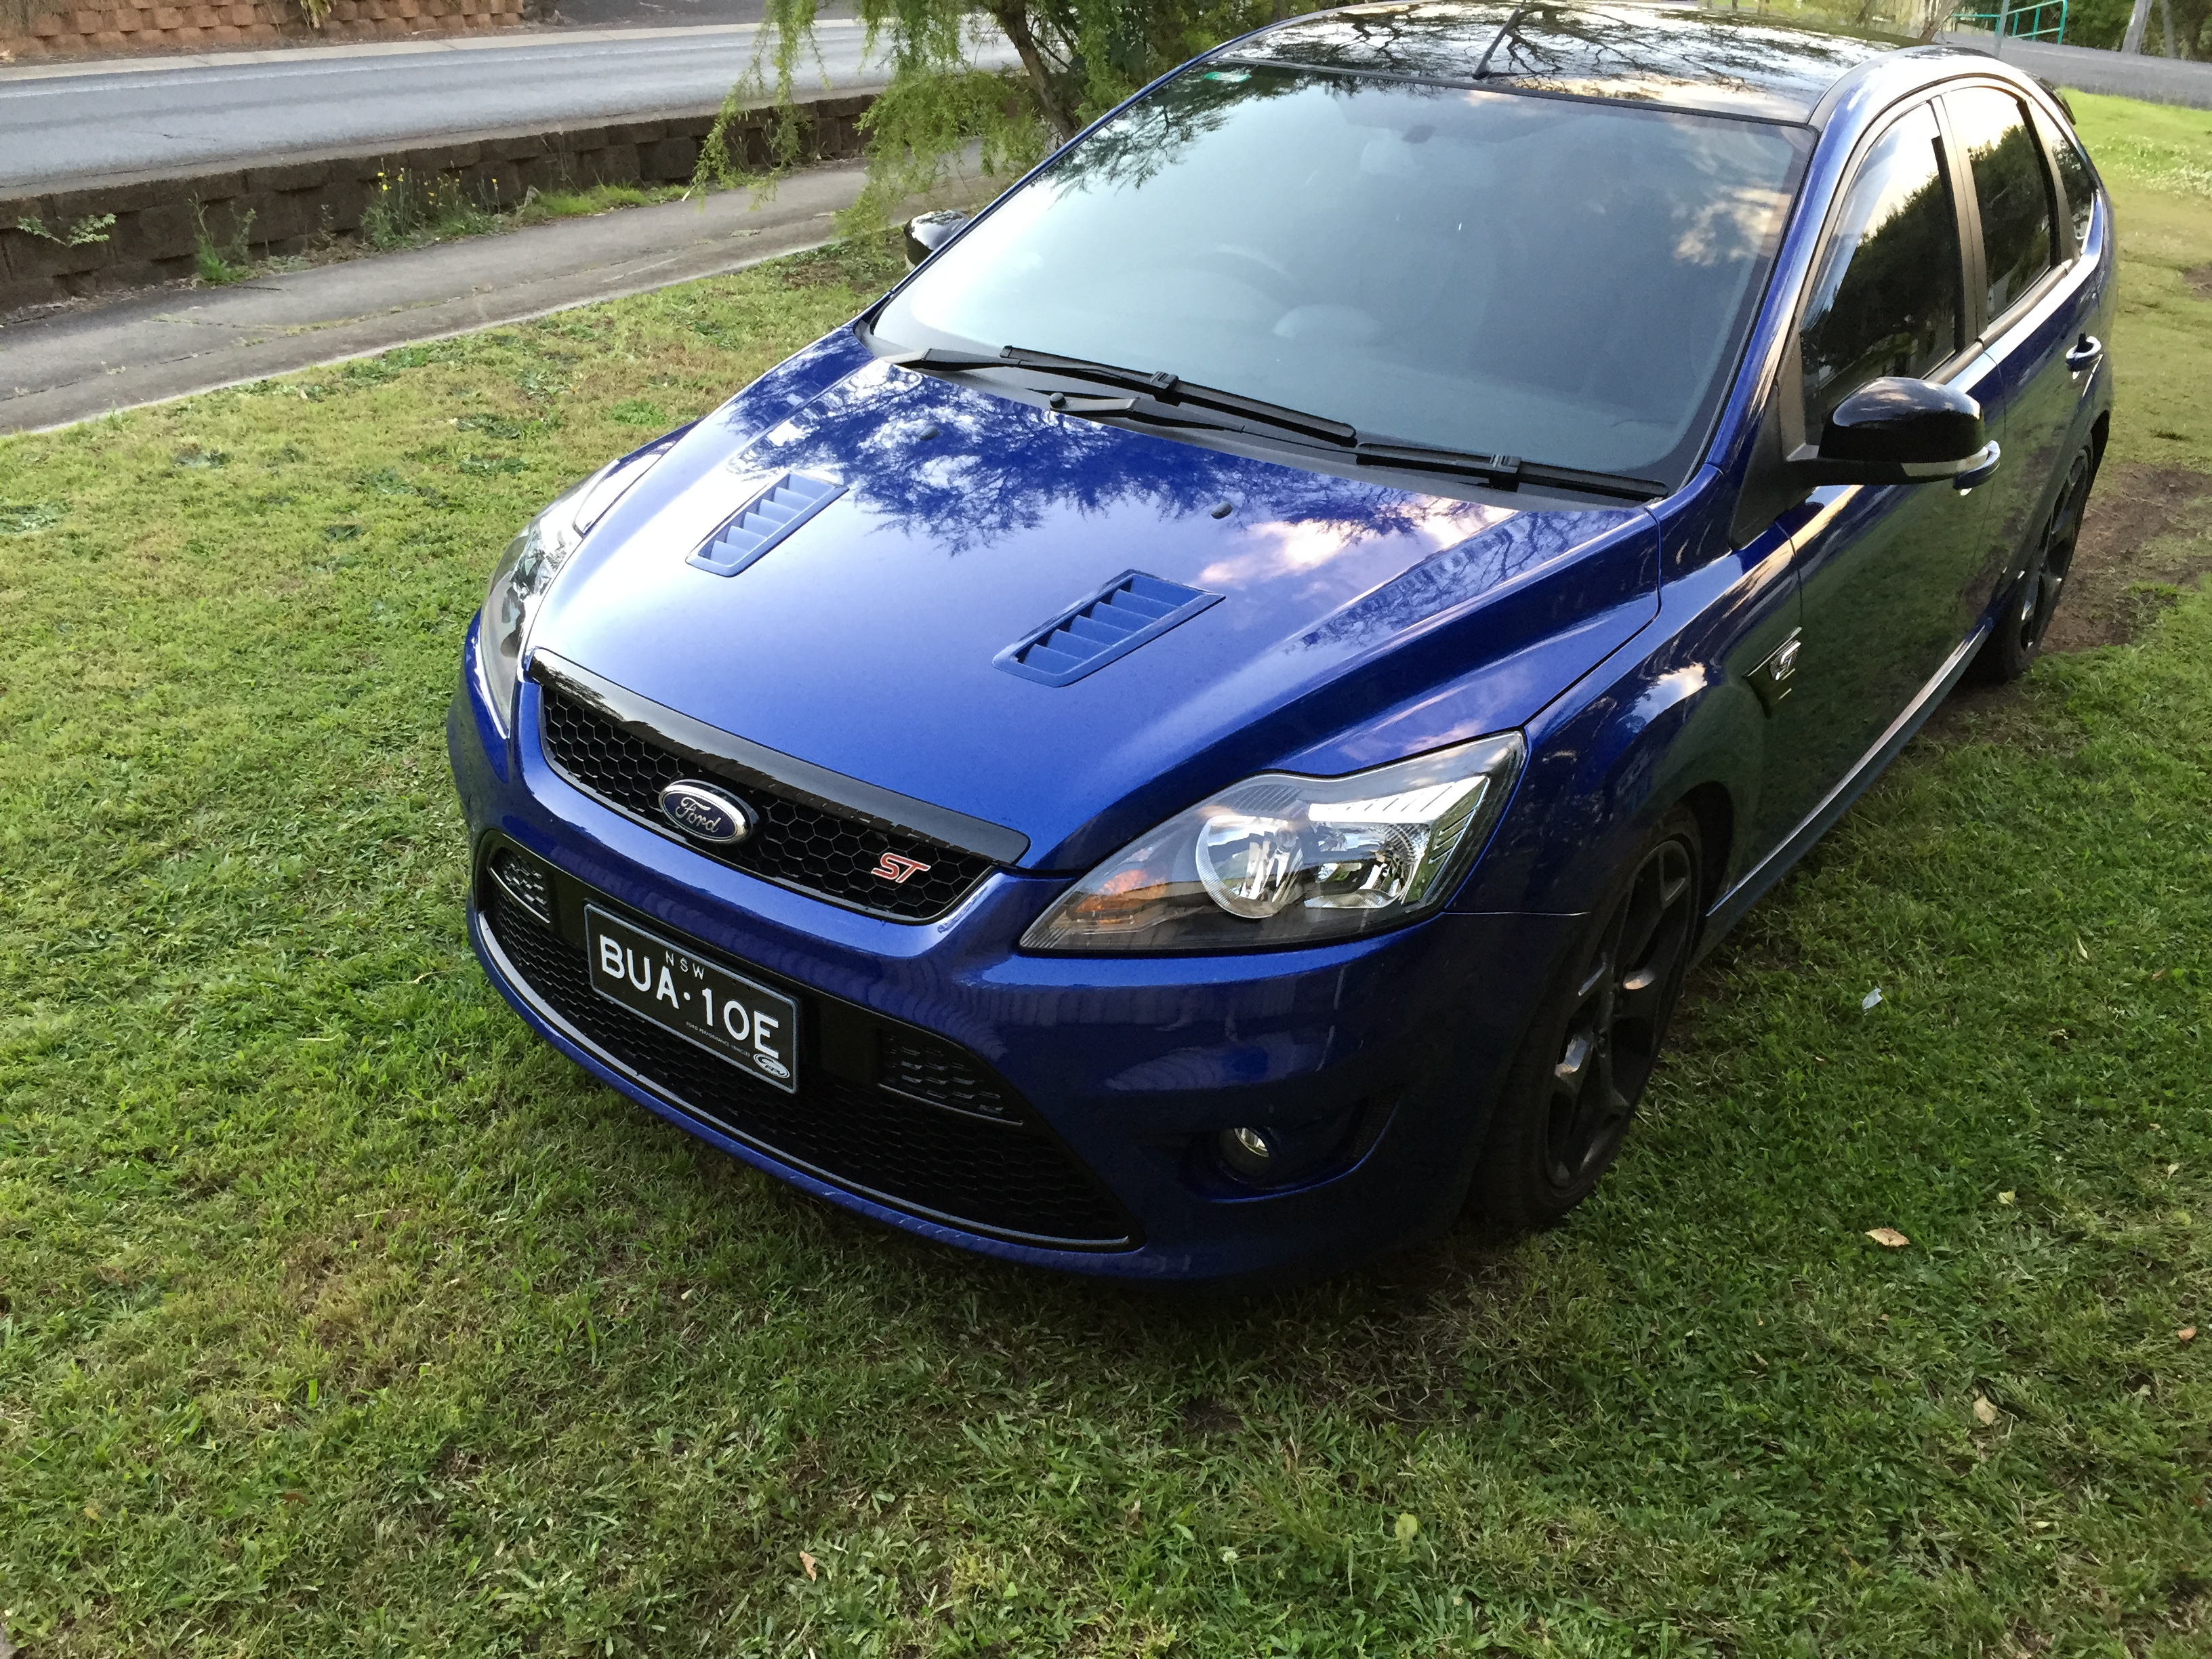 2010 ford focus xr5 turbo lv car sales nsw far north. Black Bedroom Furniture Sets. Home Design Ideas